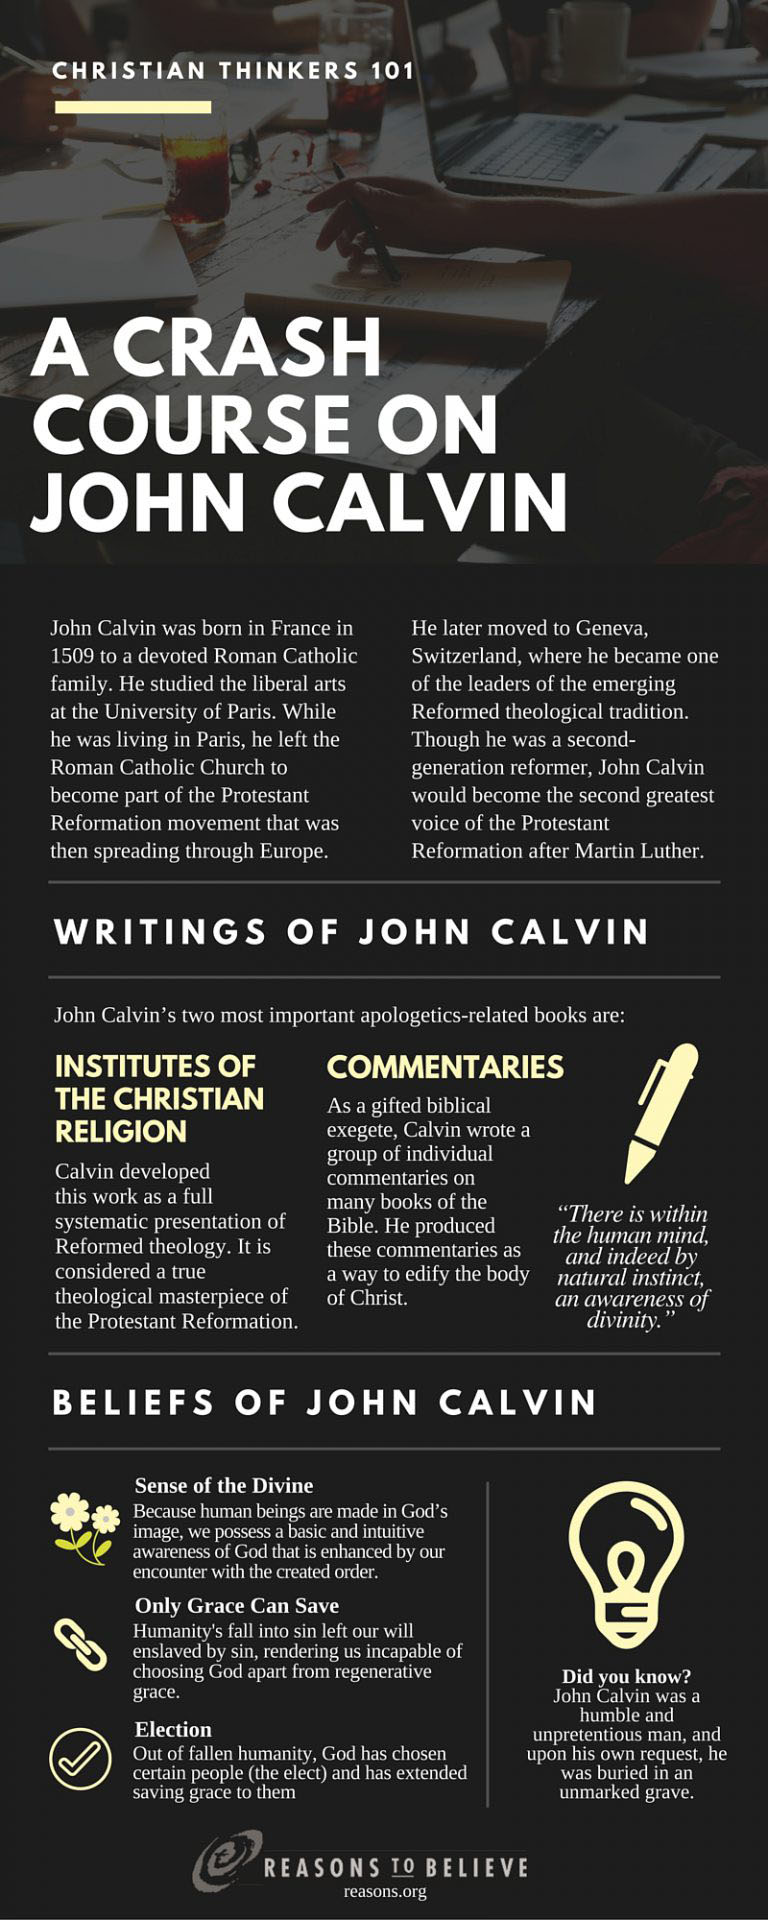 blog__inline--christian-thinkers-101-a-crash-course-on-john-calvin